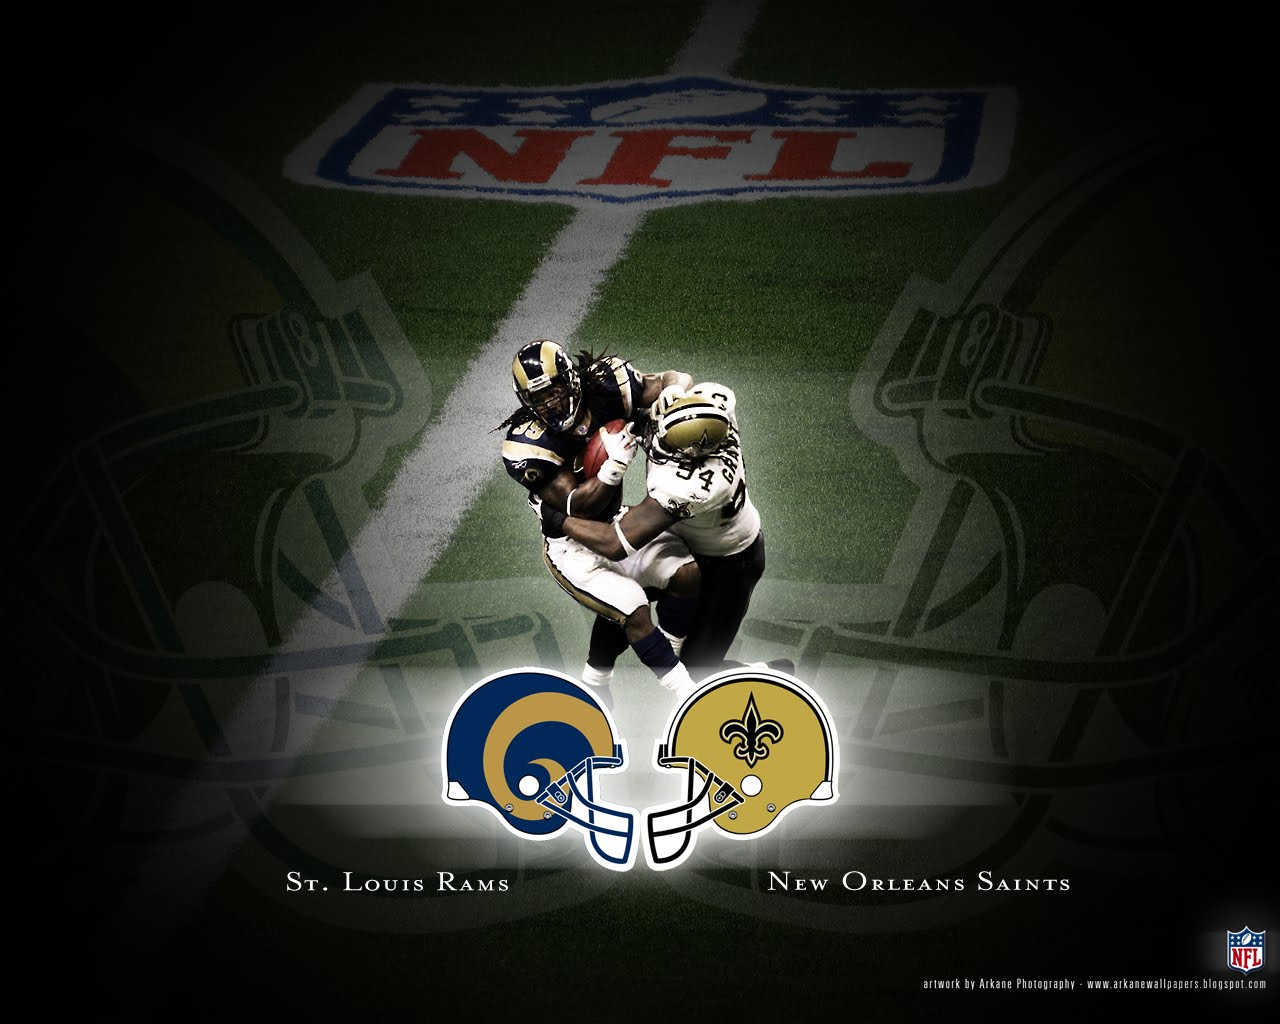 Etichete: Battle 10, New Orleans Saints, NFL, St Louis Rams